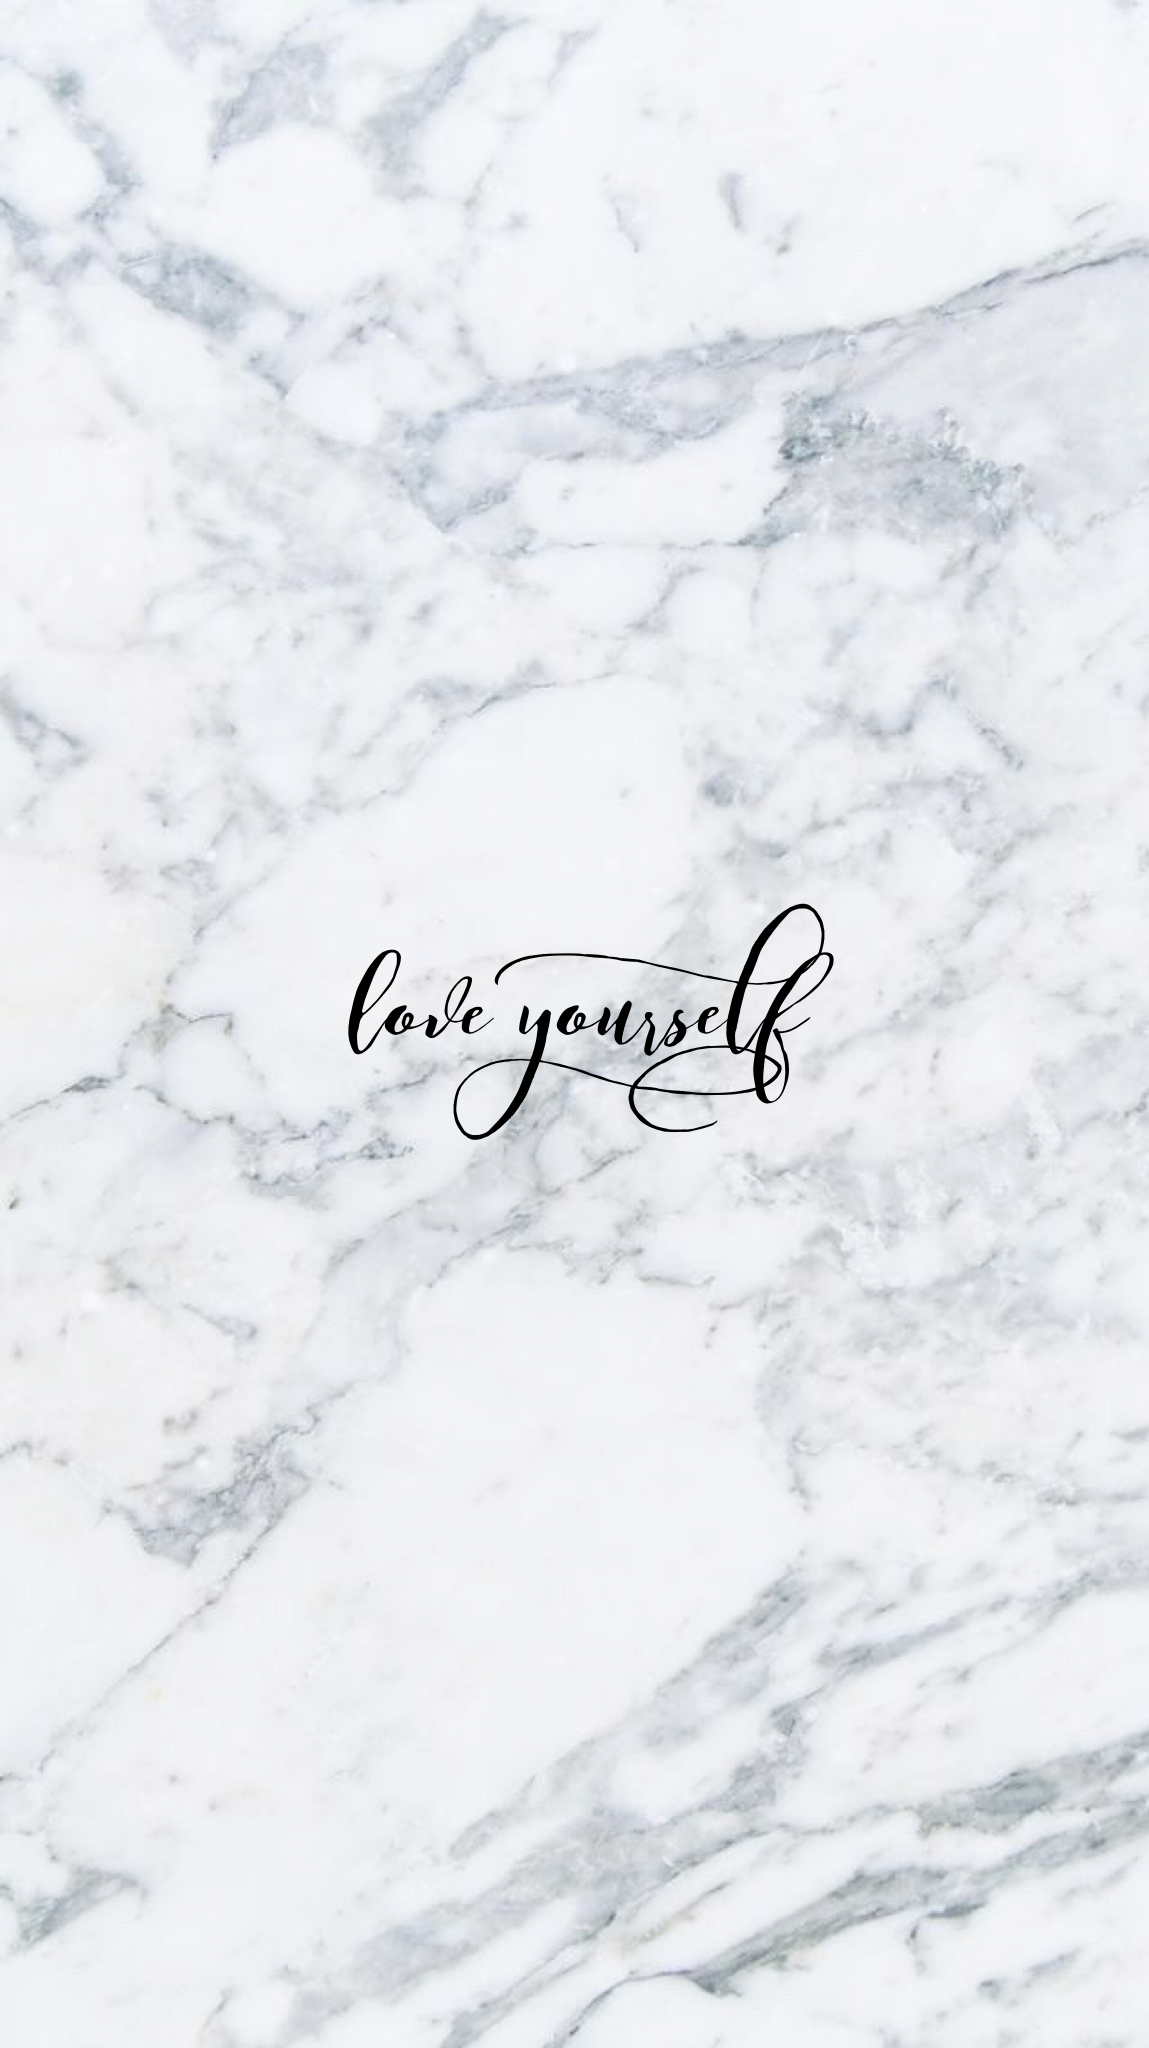 I Love Myself Wallpaper Iphone : Love Yourself iPhone Wallpaper @EvaLand Fondos de iphone ...